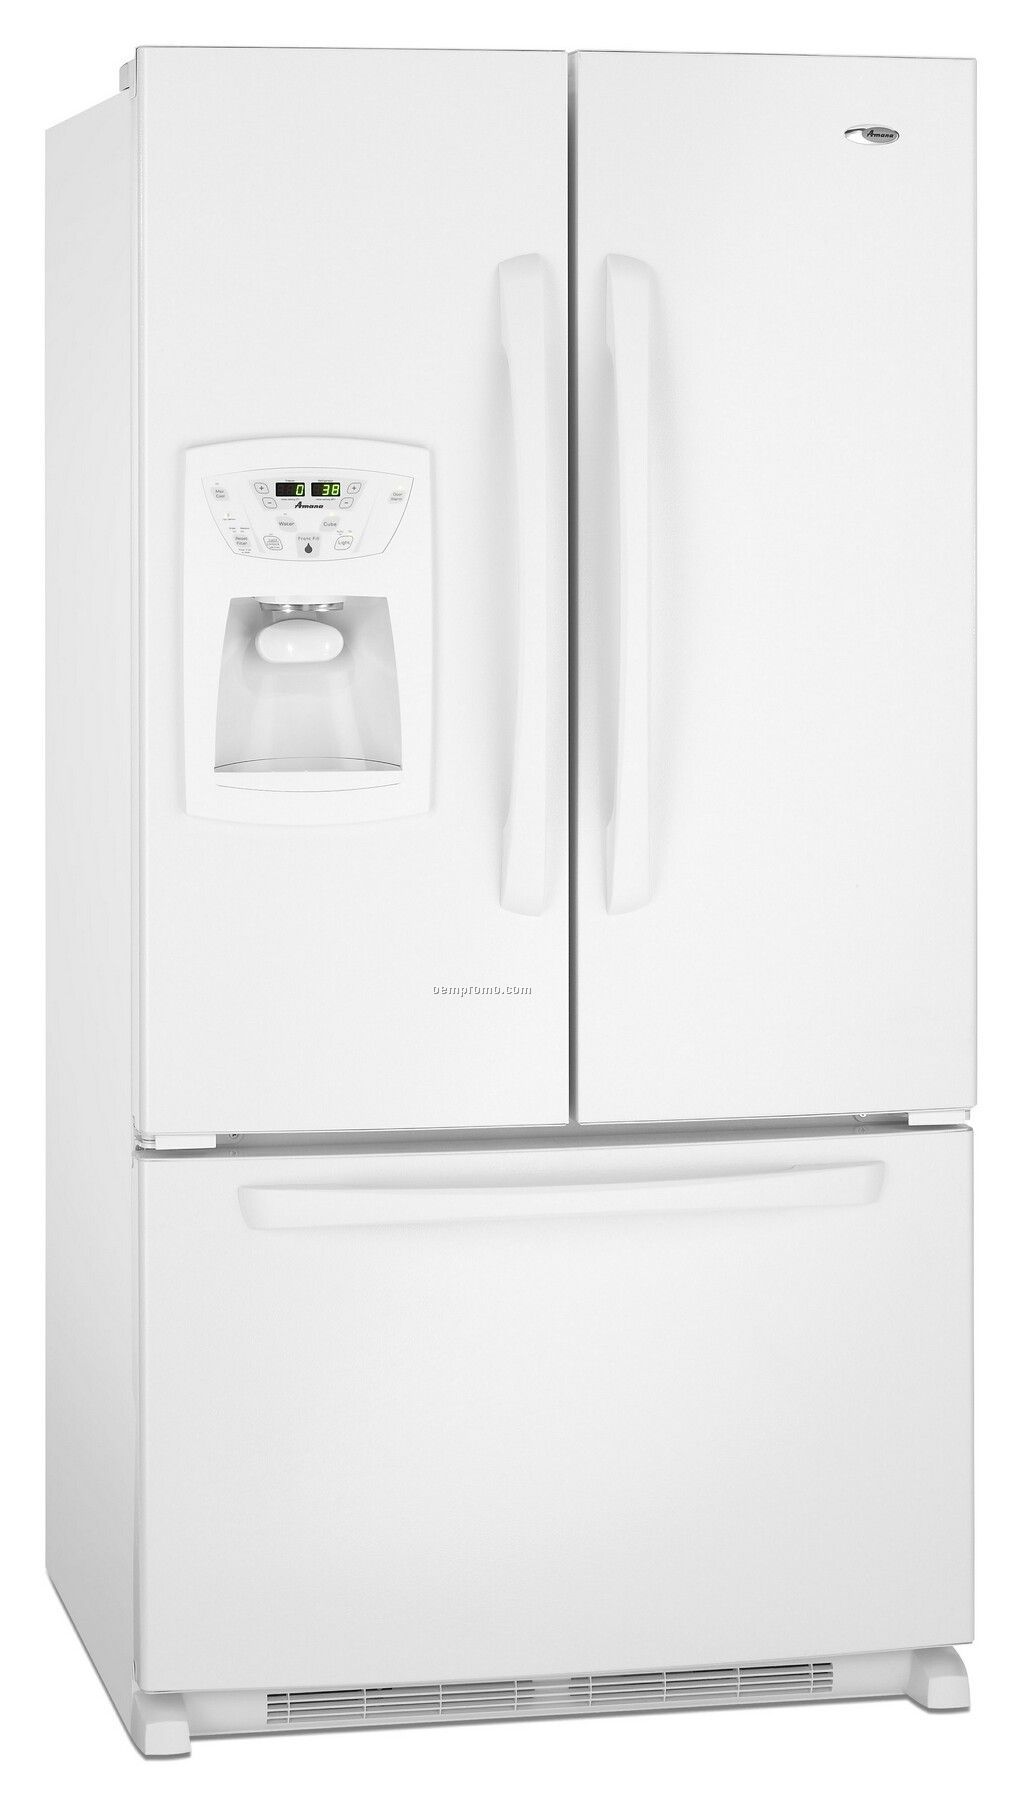 Amana 25 Cubic Foot French Door Refrigerator (White)